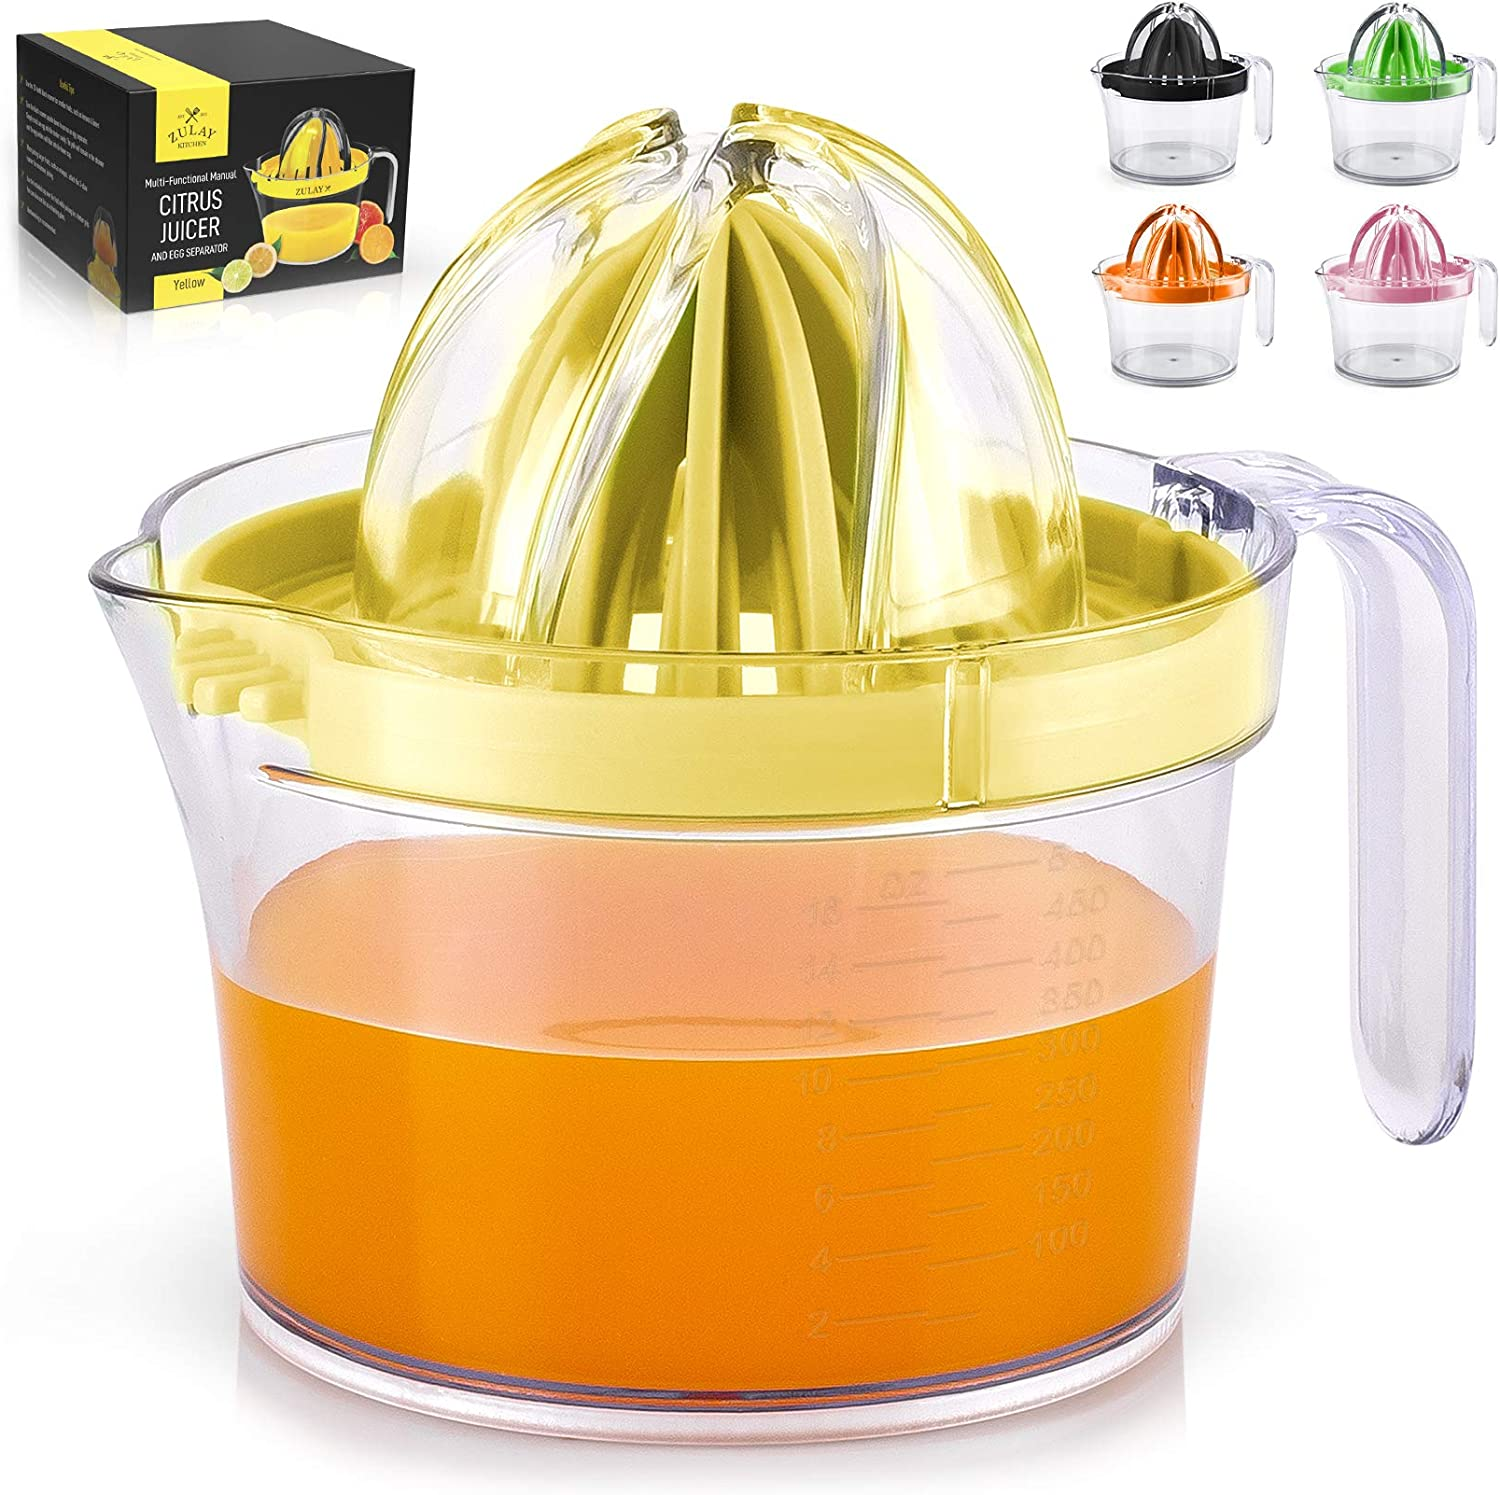 Zulay (17oz Capacity) Citrus Juicer Hand Press - Multifunctional Hand Juicer With Egg Separator, Large Reamer Adaptor, & Built-in Handle - Manual Juicer For Oranges, Lemons, Limes & More (Yellow)